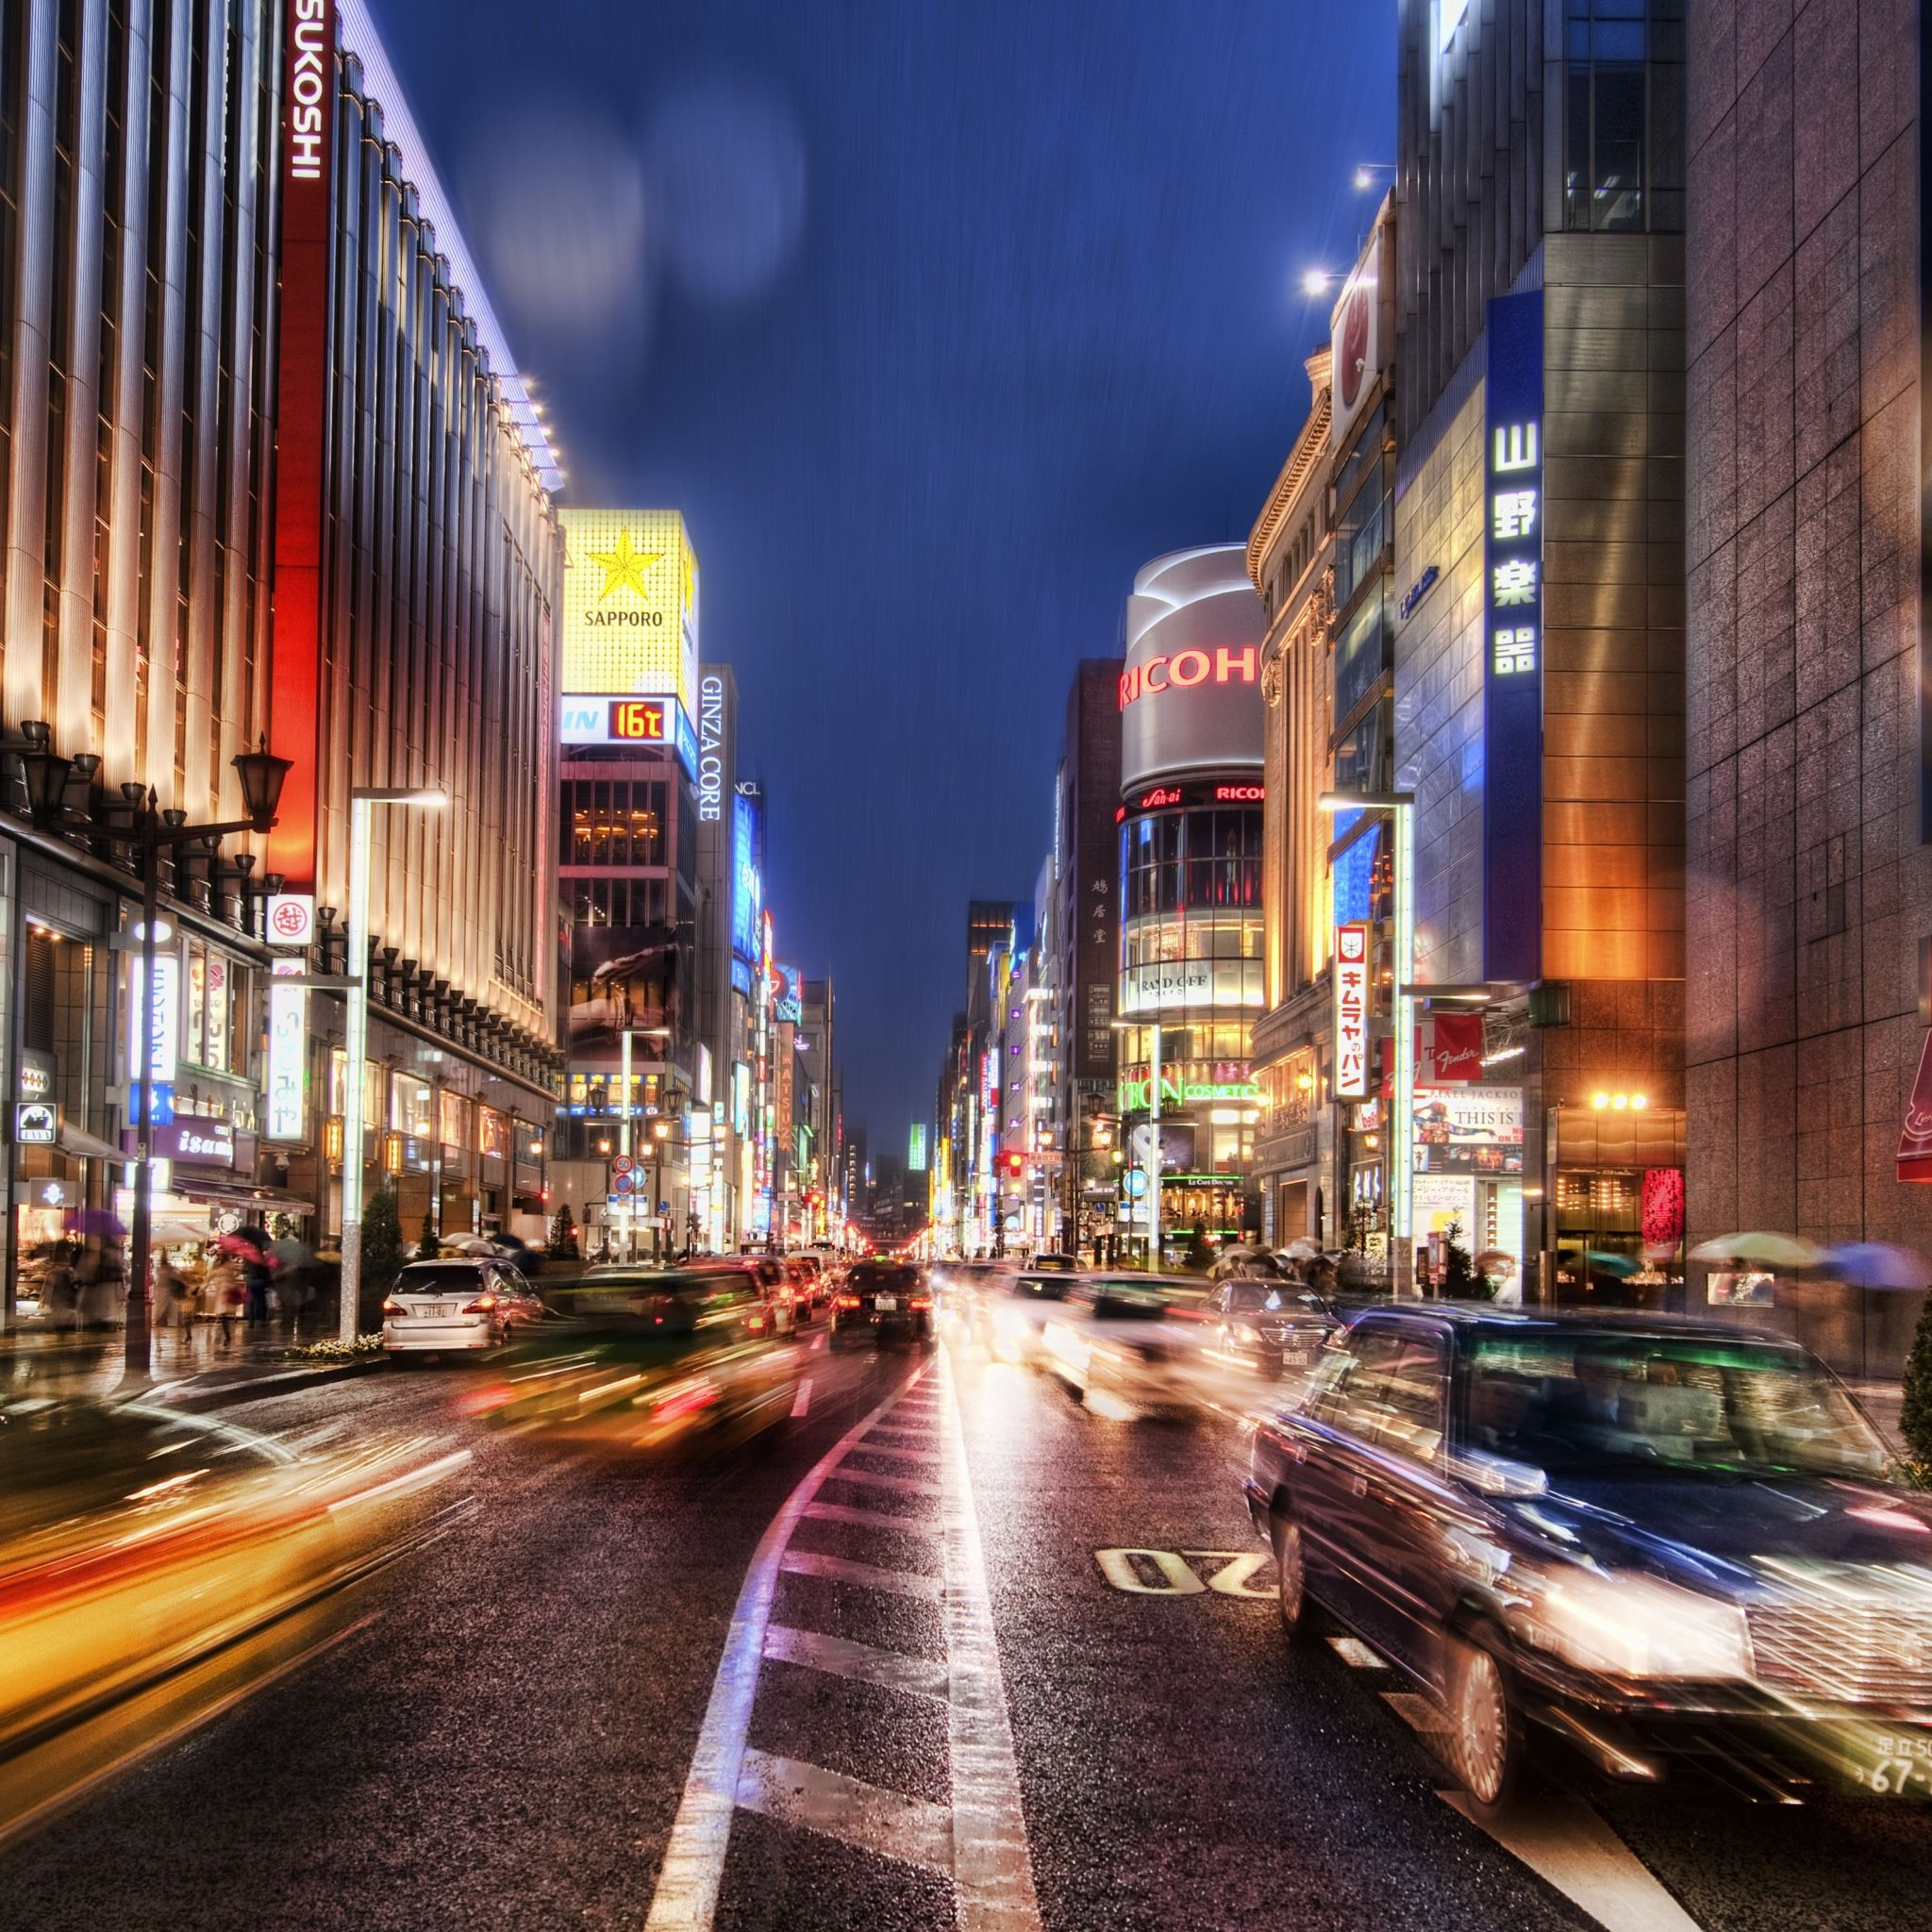 Tokyo Street At Night Hdr iPad Air wallpaper